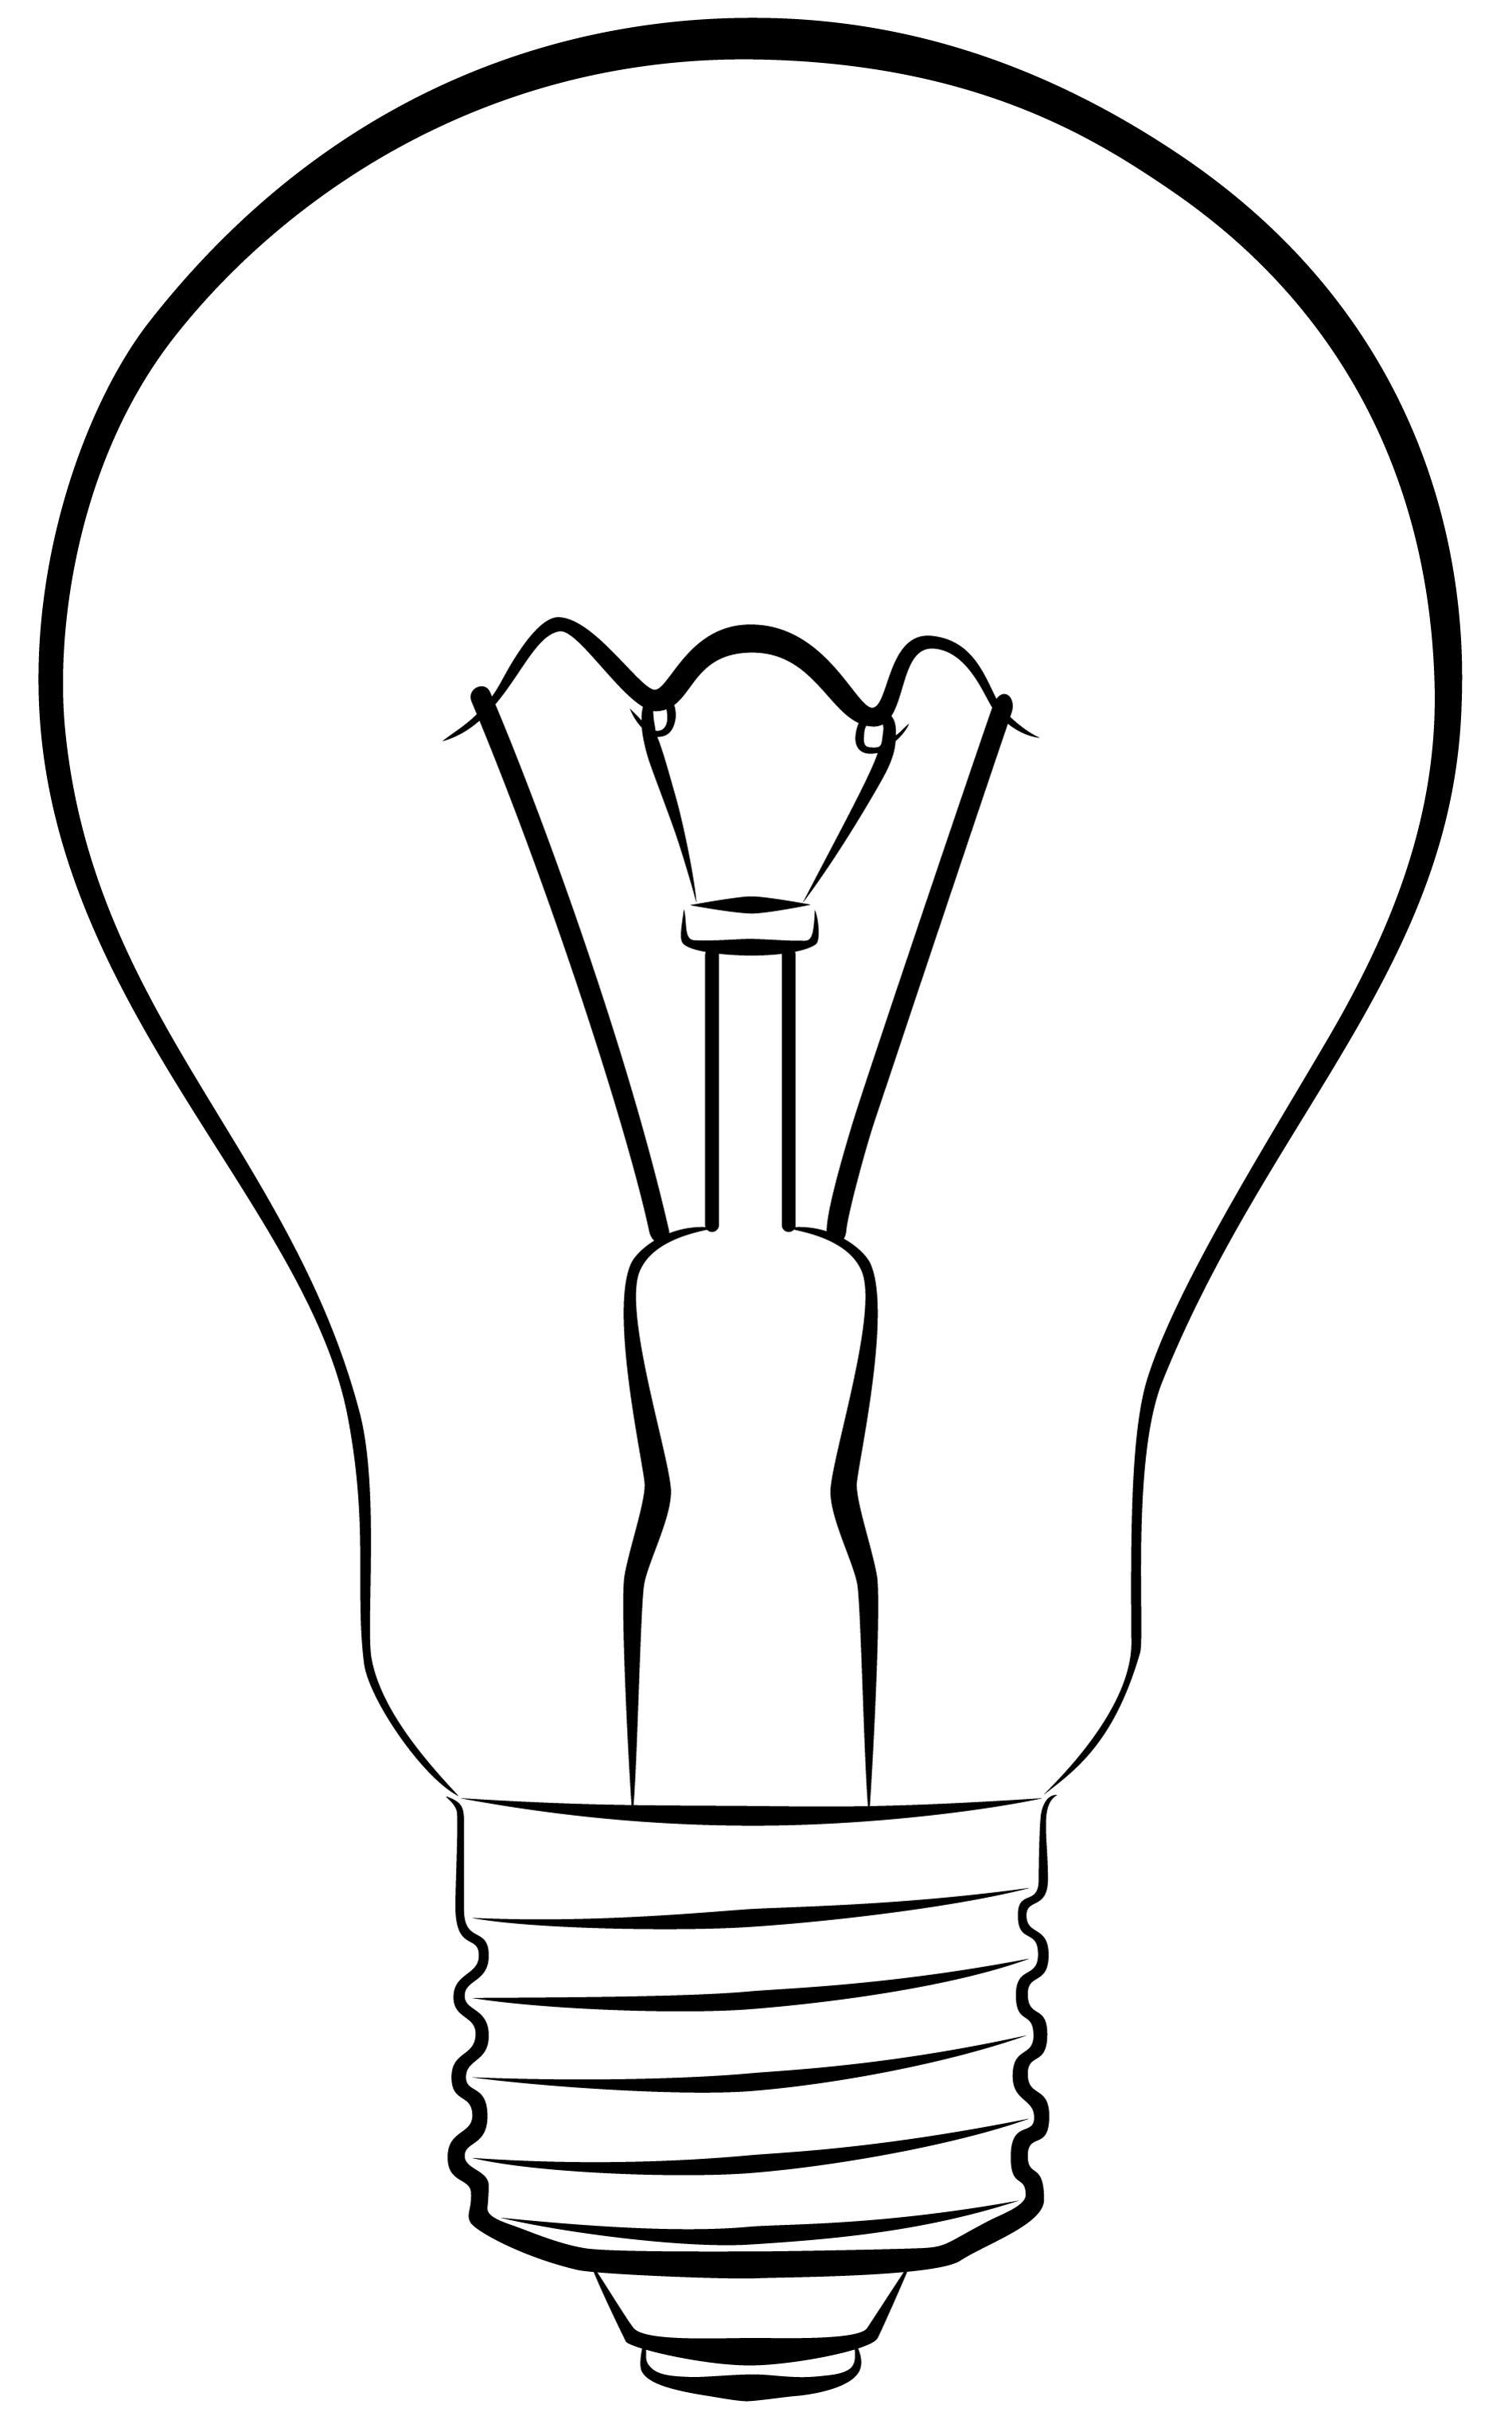 Stop light bulb thinking in weight loss plan